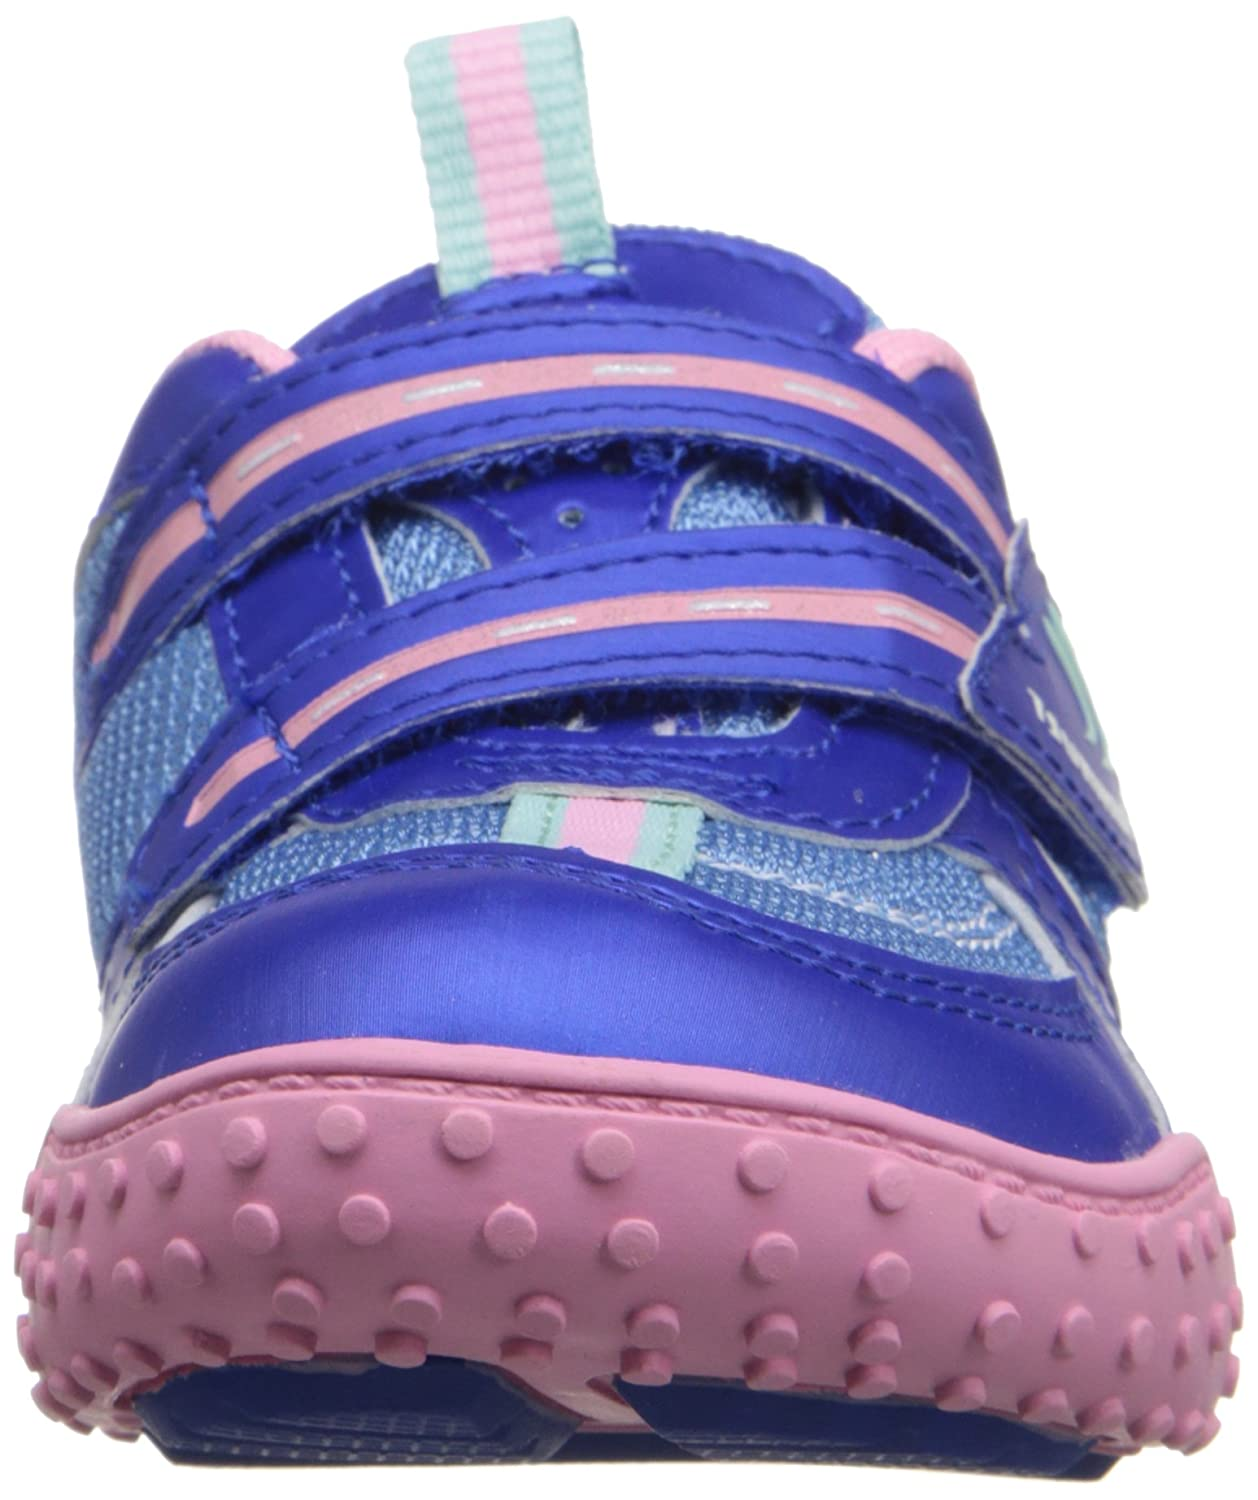 Tsukihoshi Wheel Casual Sneaker Royal//Pink 9.5 M US Toddler Wheel Toddler//Little Kid//Big Kid K